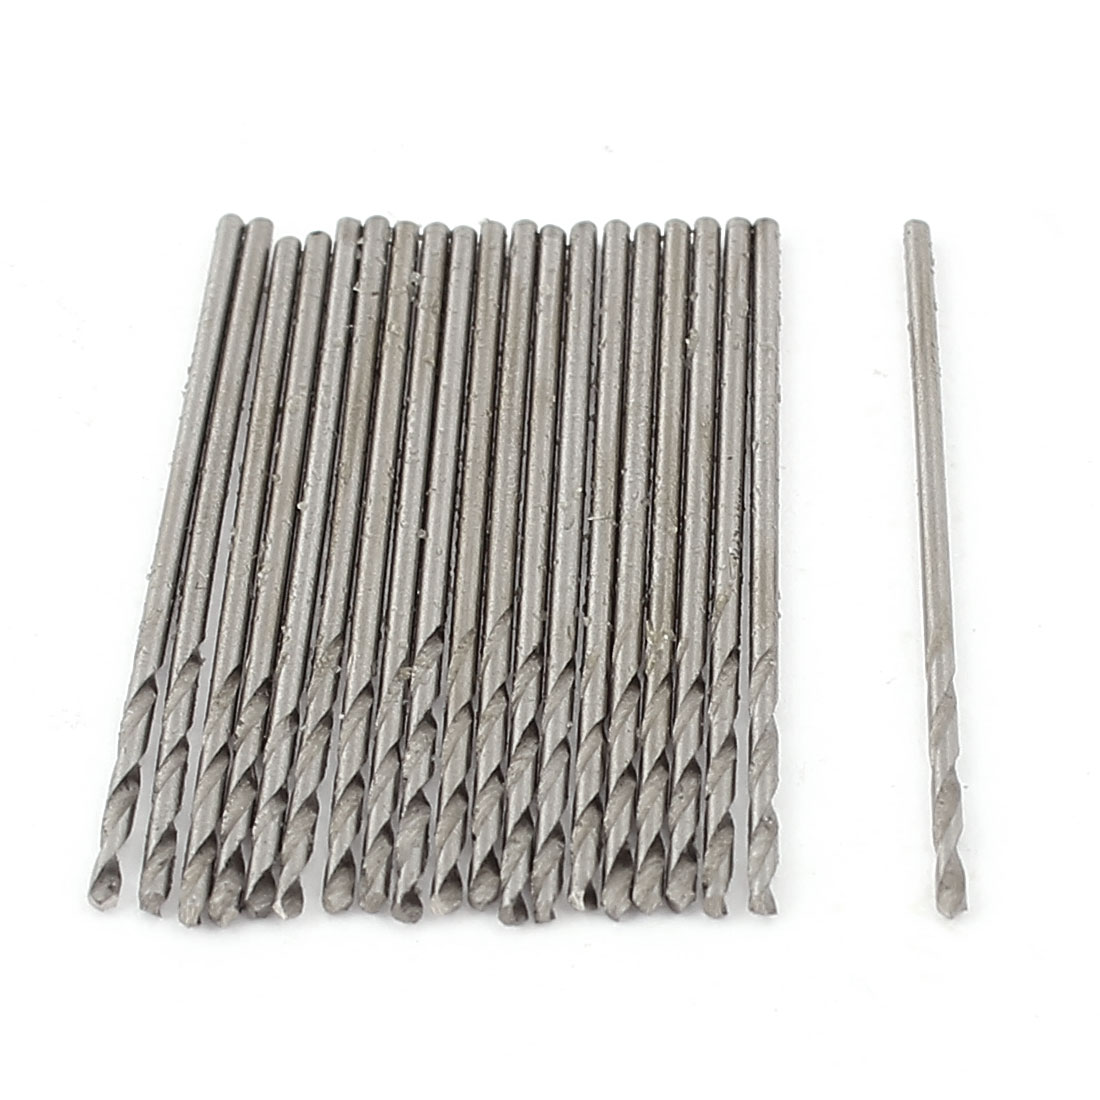 1mm Diameter 20pcs Straight Shank Twisted Drill Bit Tip